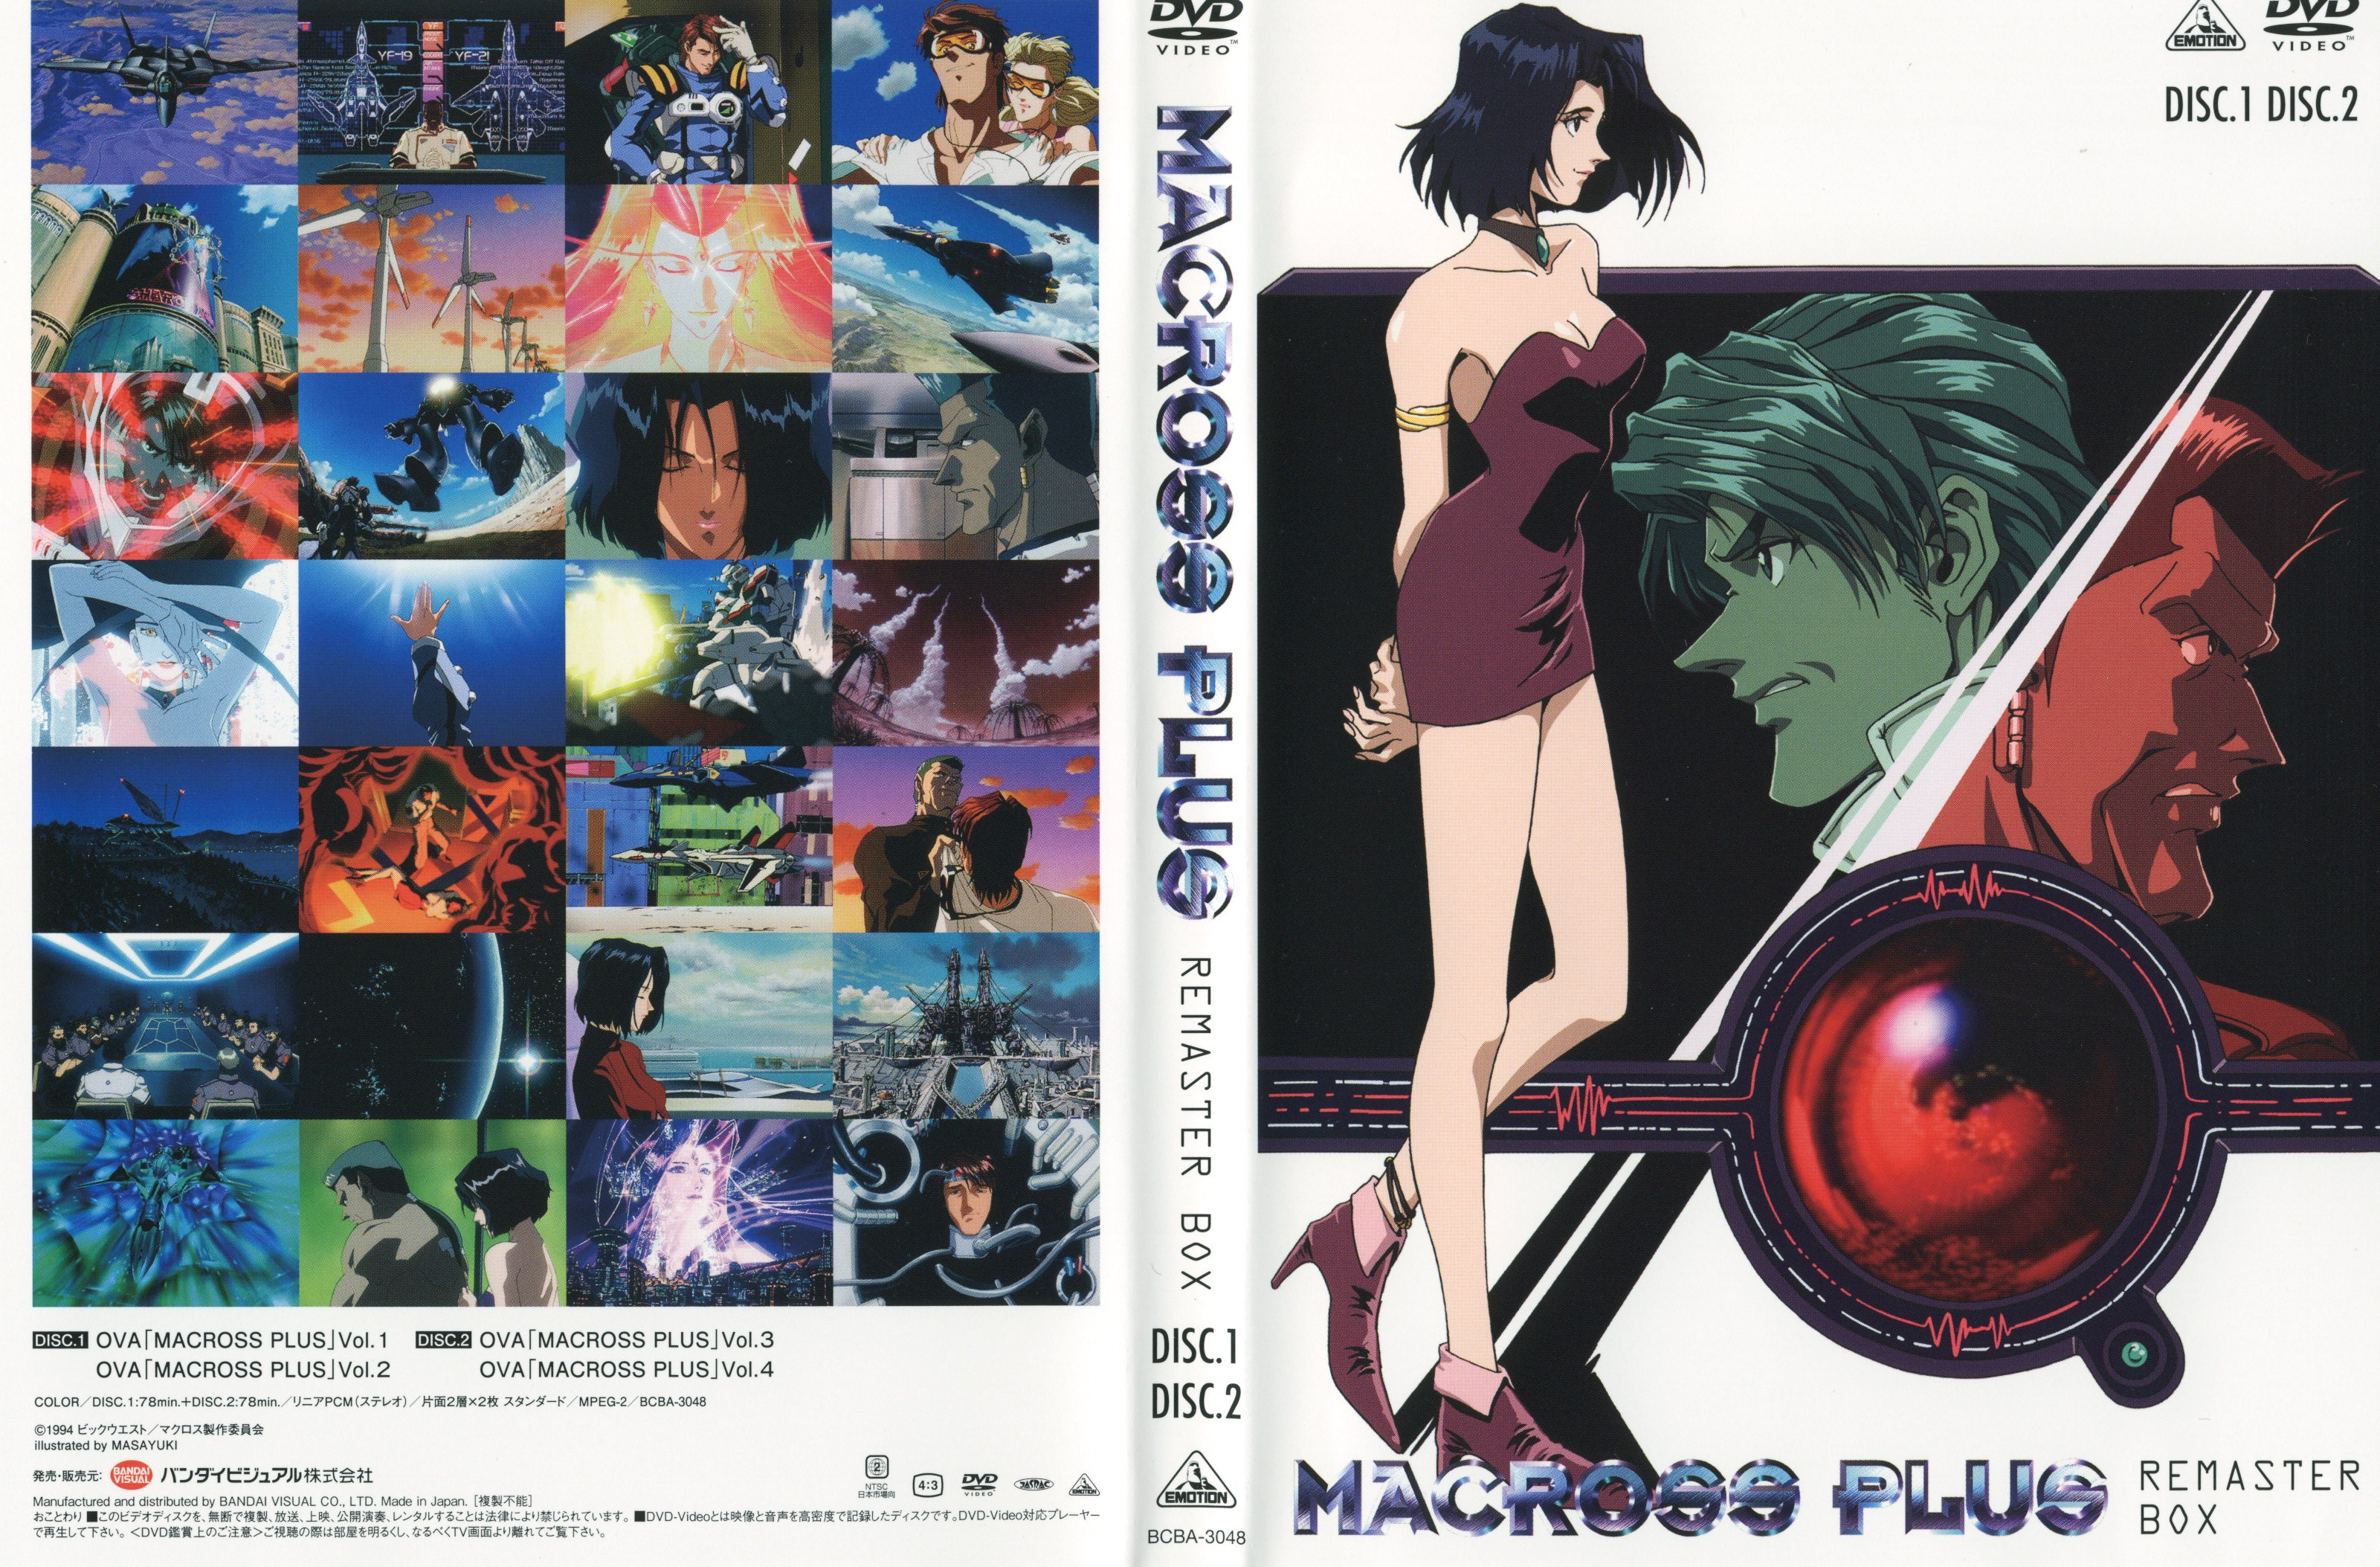 Macross Plus Dvd View Fullsize Macross Plus